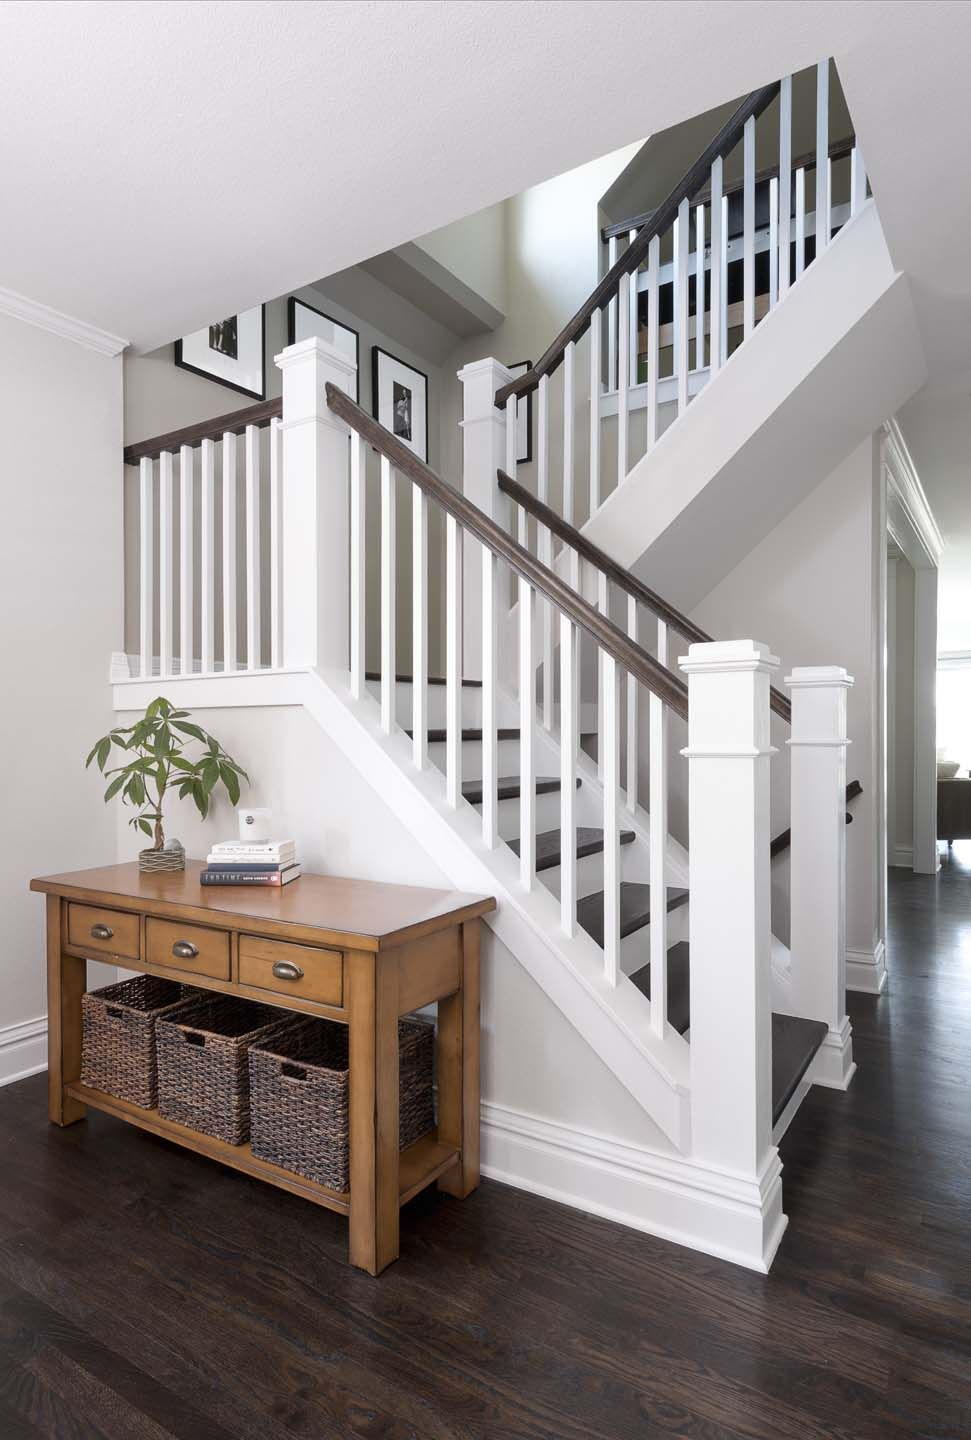 Basement Stair Landing Decorating: Congress Park Whole House Refresh « Classic Homeworks